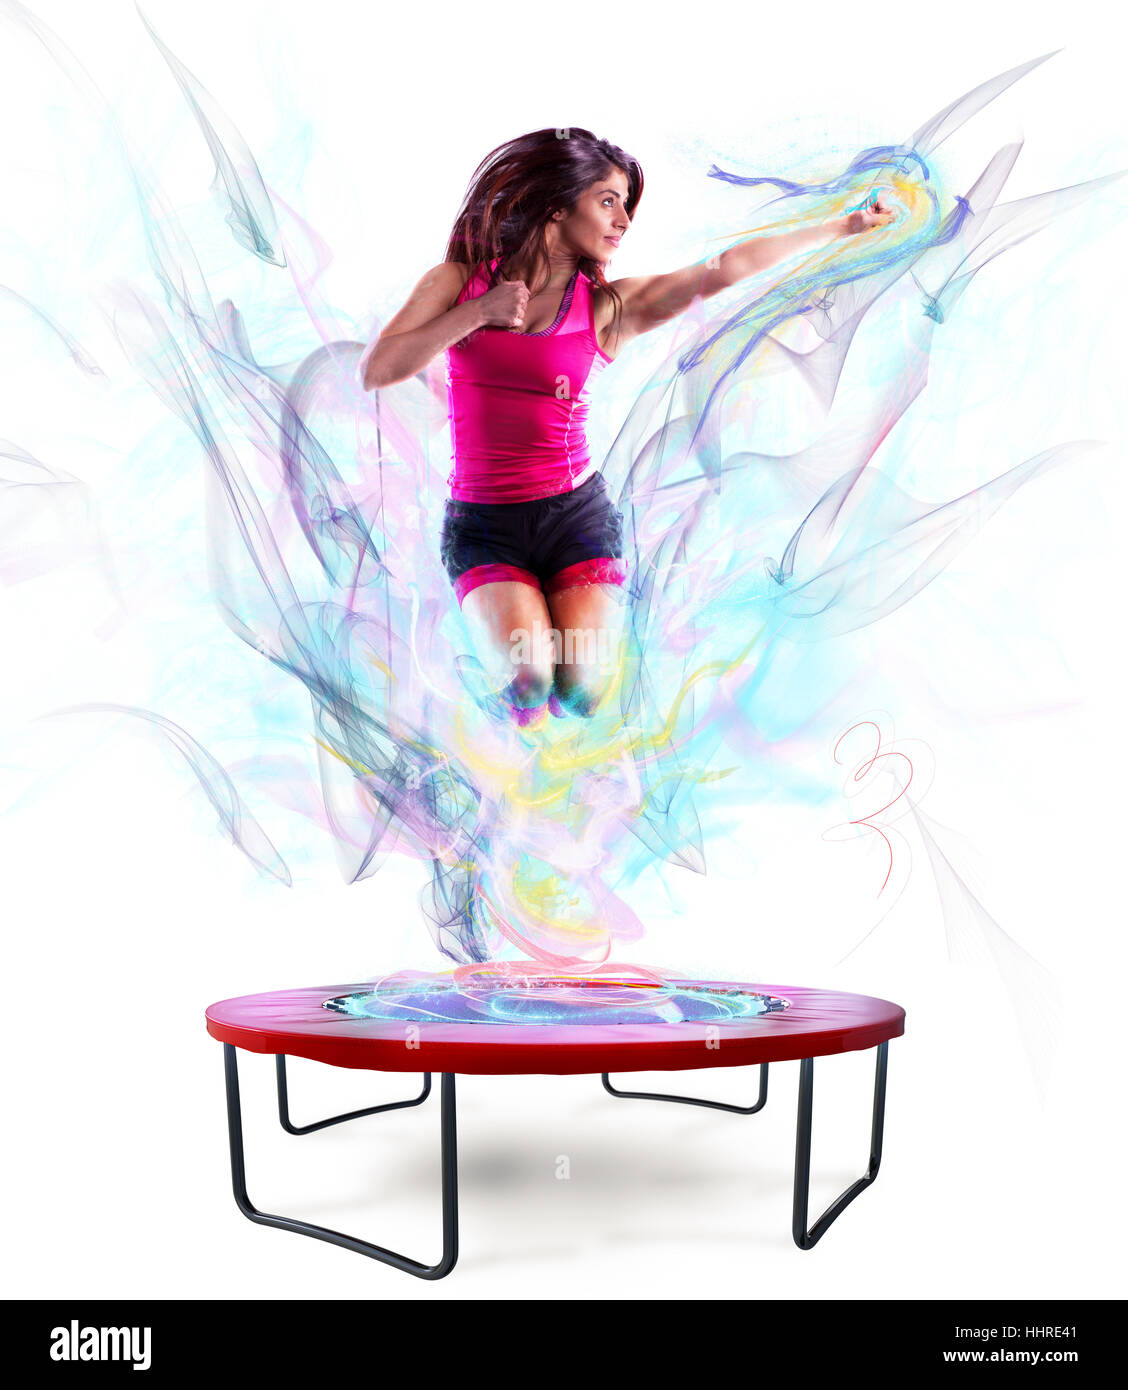 Power jump fitness - Stock Image